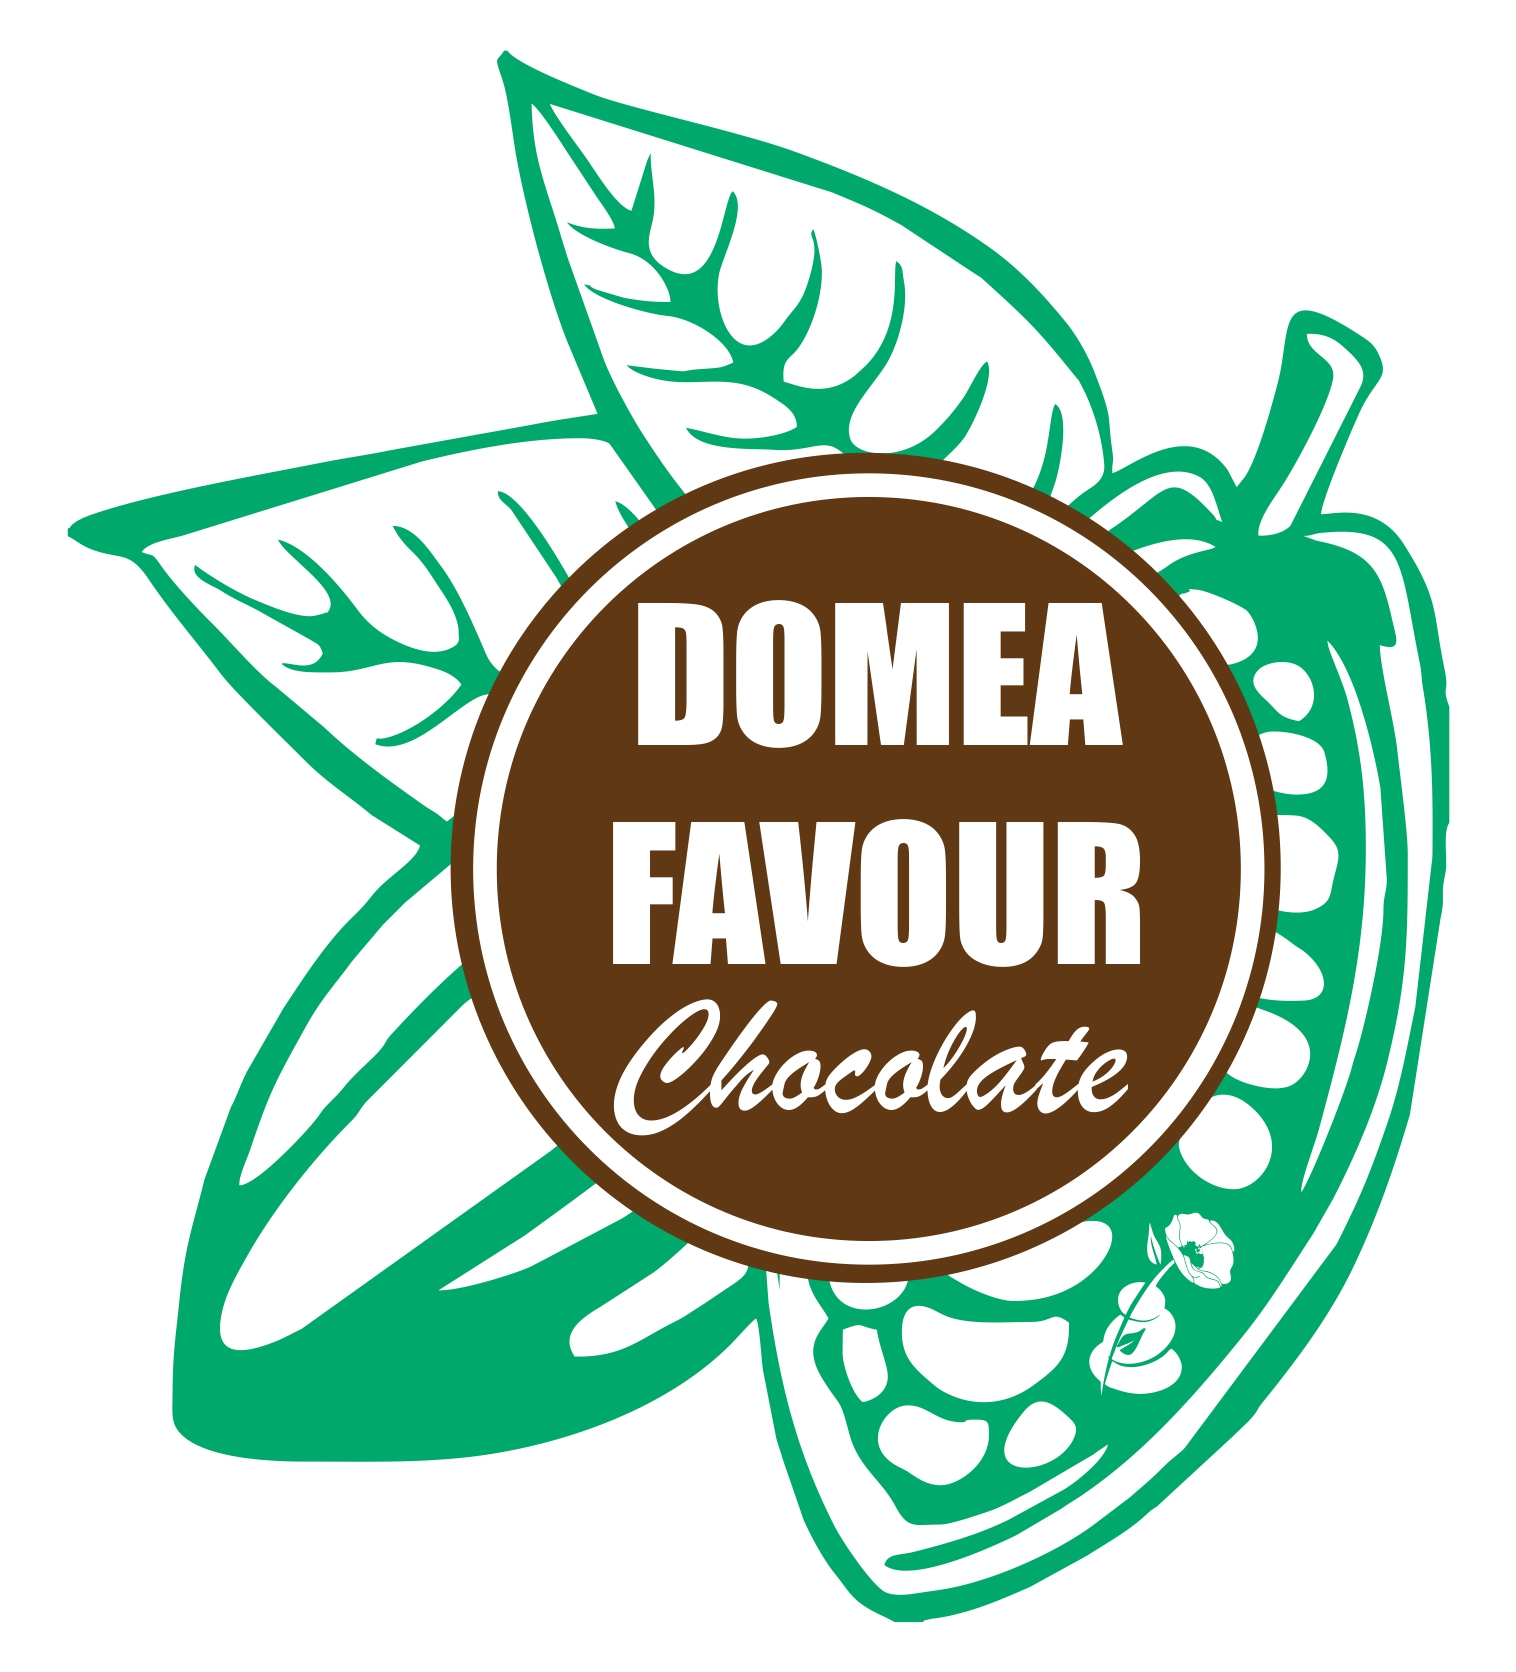 Domea Favour Chocolate